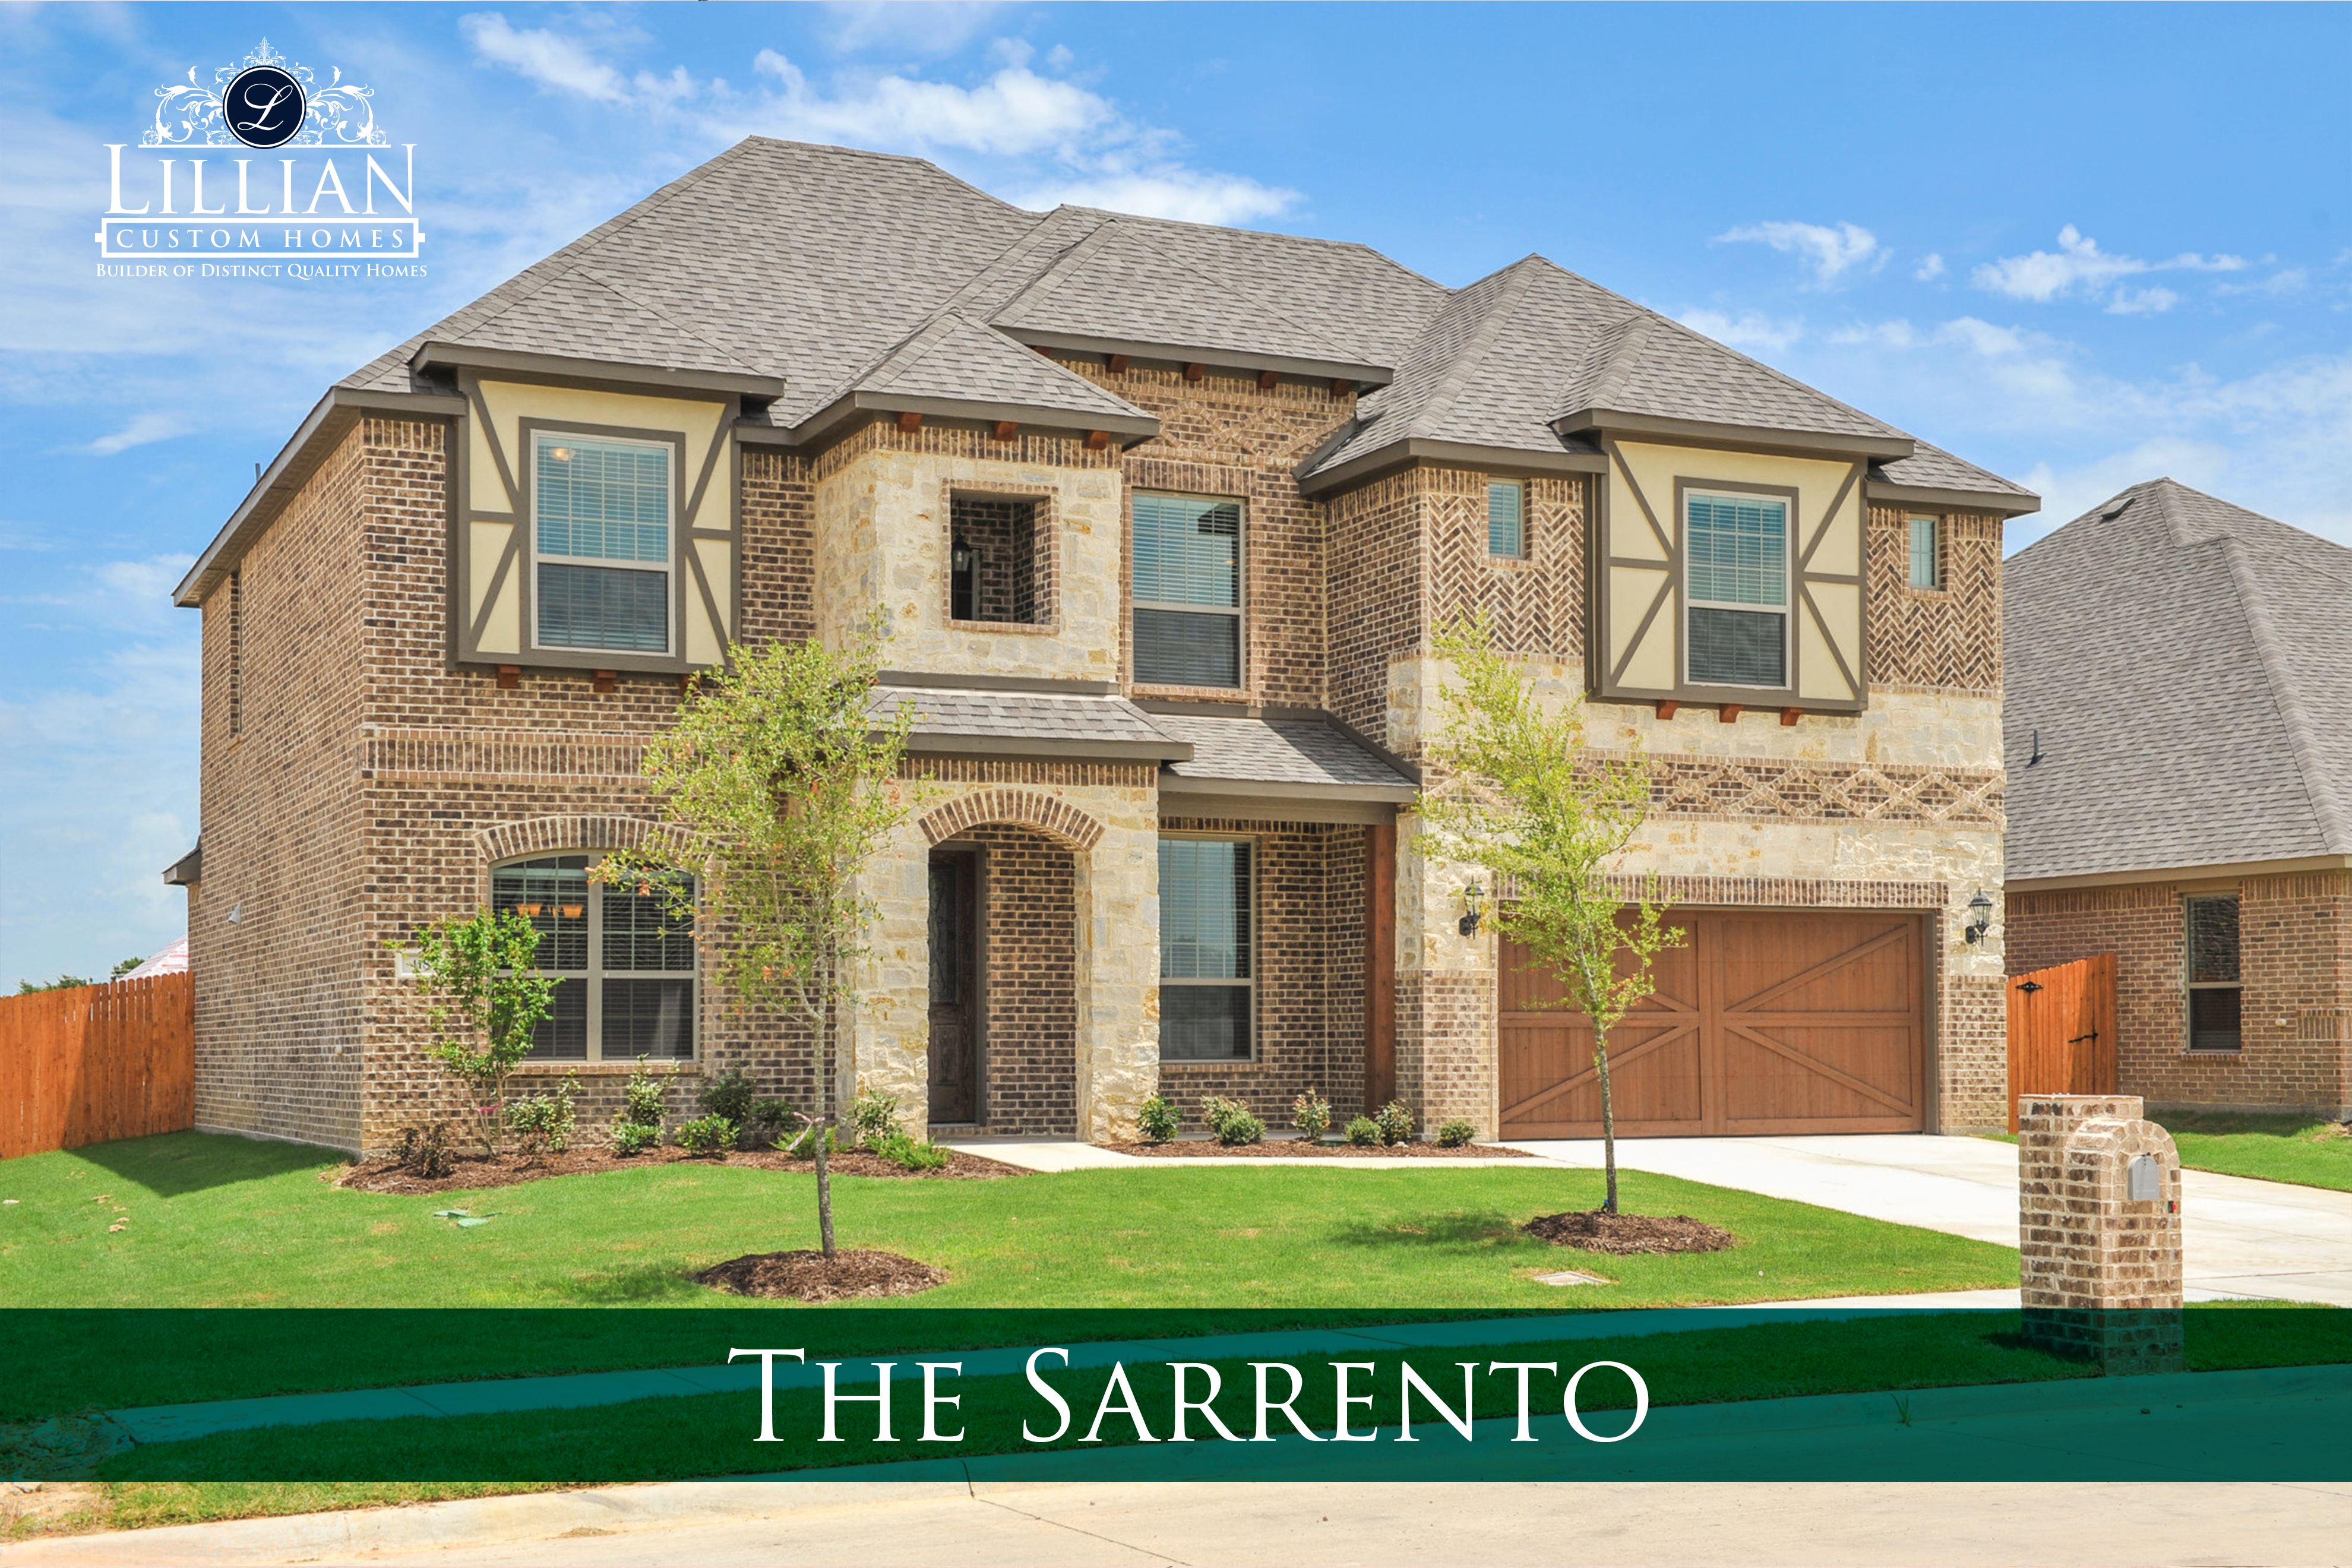 sarrento floor plan new homes for sale lawson farms the grove park place community